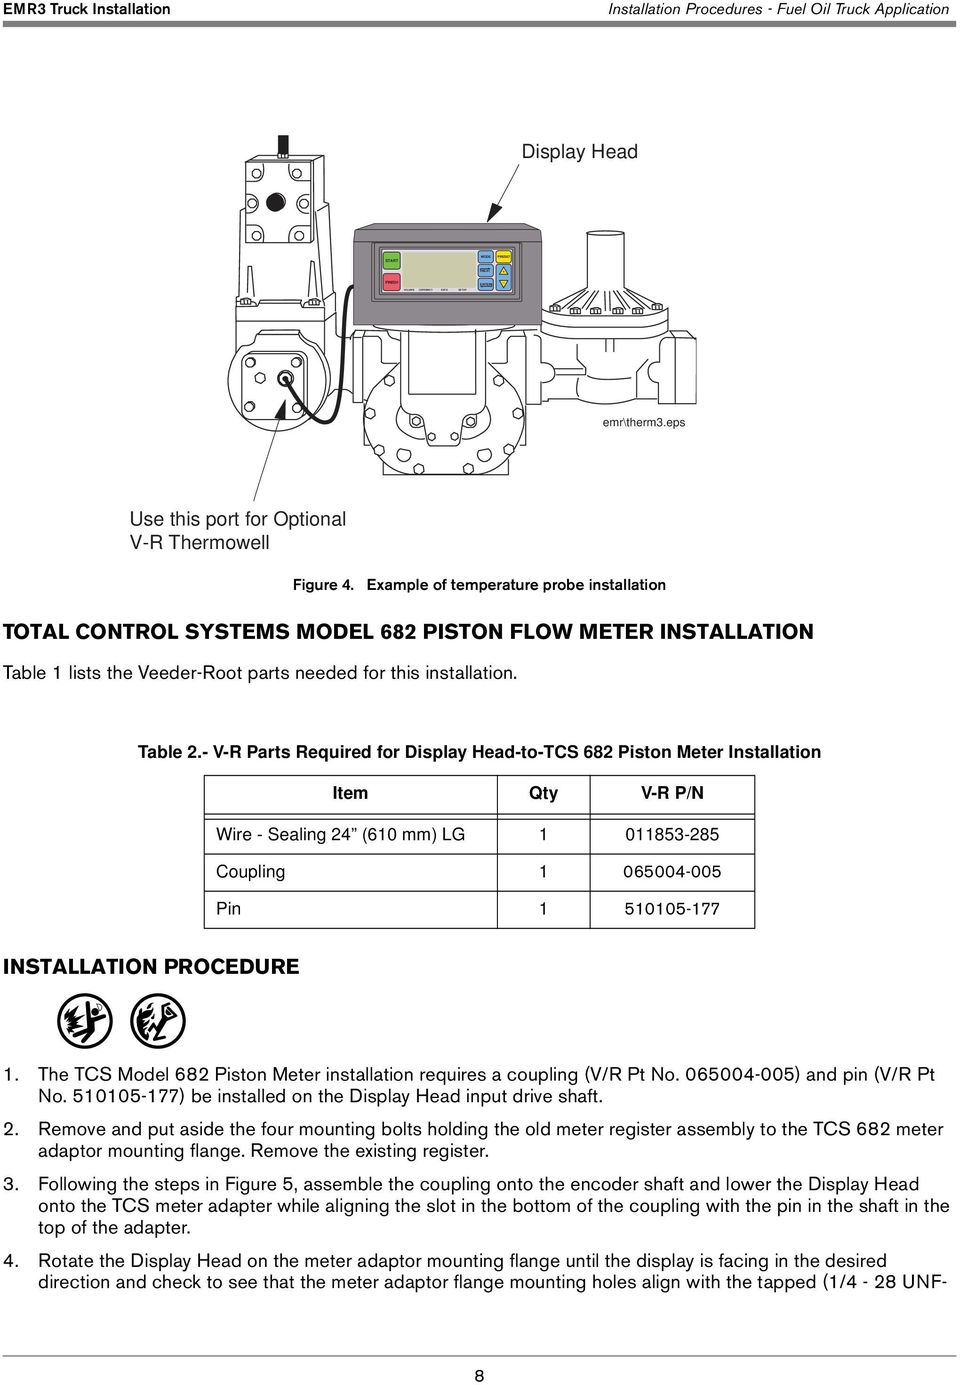 raven flow meter wiring diagram wiring diagram and schematics rs-422 pinout db9 manual no revision i emr 3 installation guide pdf page 13 5318690 manual no 577013 758 · raven cable wiring diagrams wiring diagram instructions